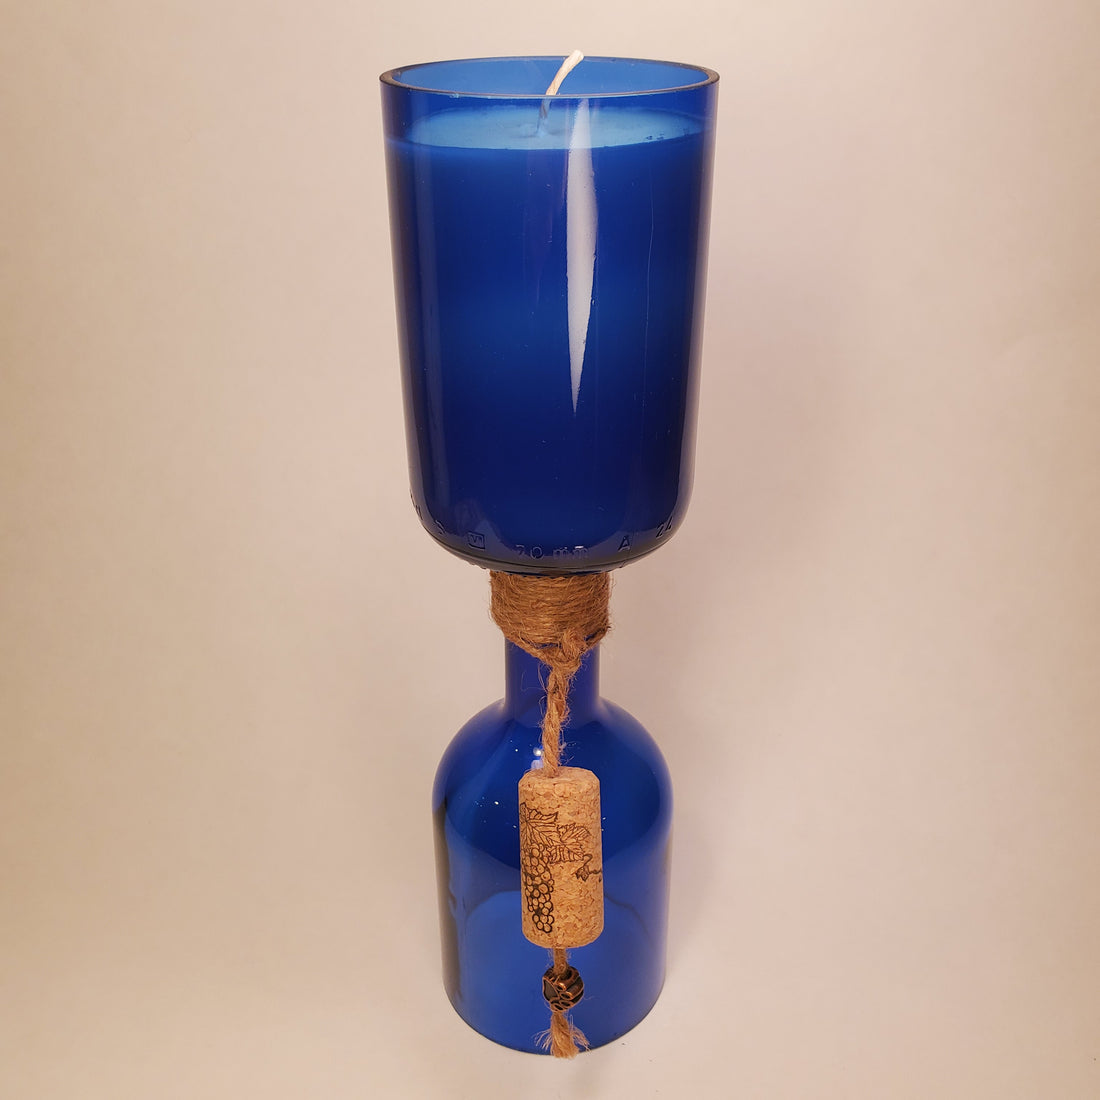 Cobalt Blue Hand-Cut Upside-Down Wine Bottle Candle - Choose Your Scent